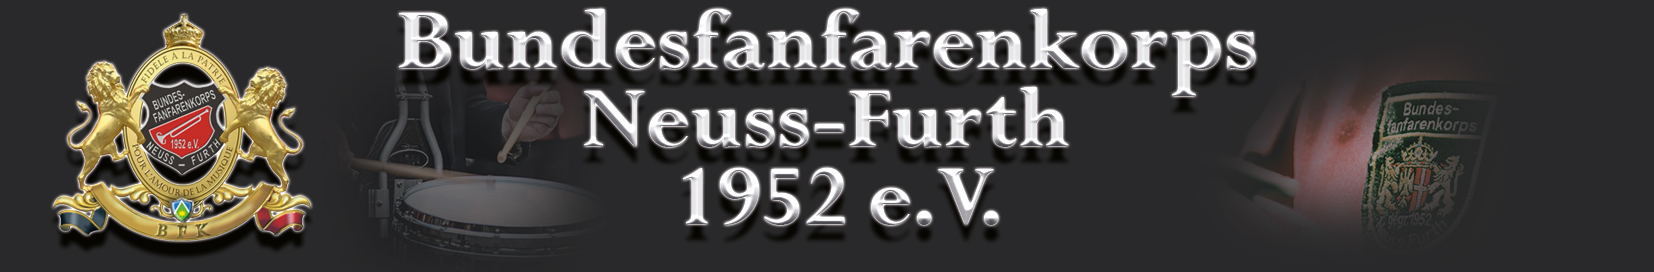 Bundesfanfarenkorps Neuss-Furth 1952 e.V.